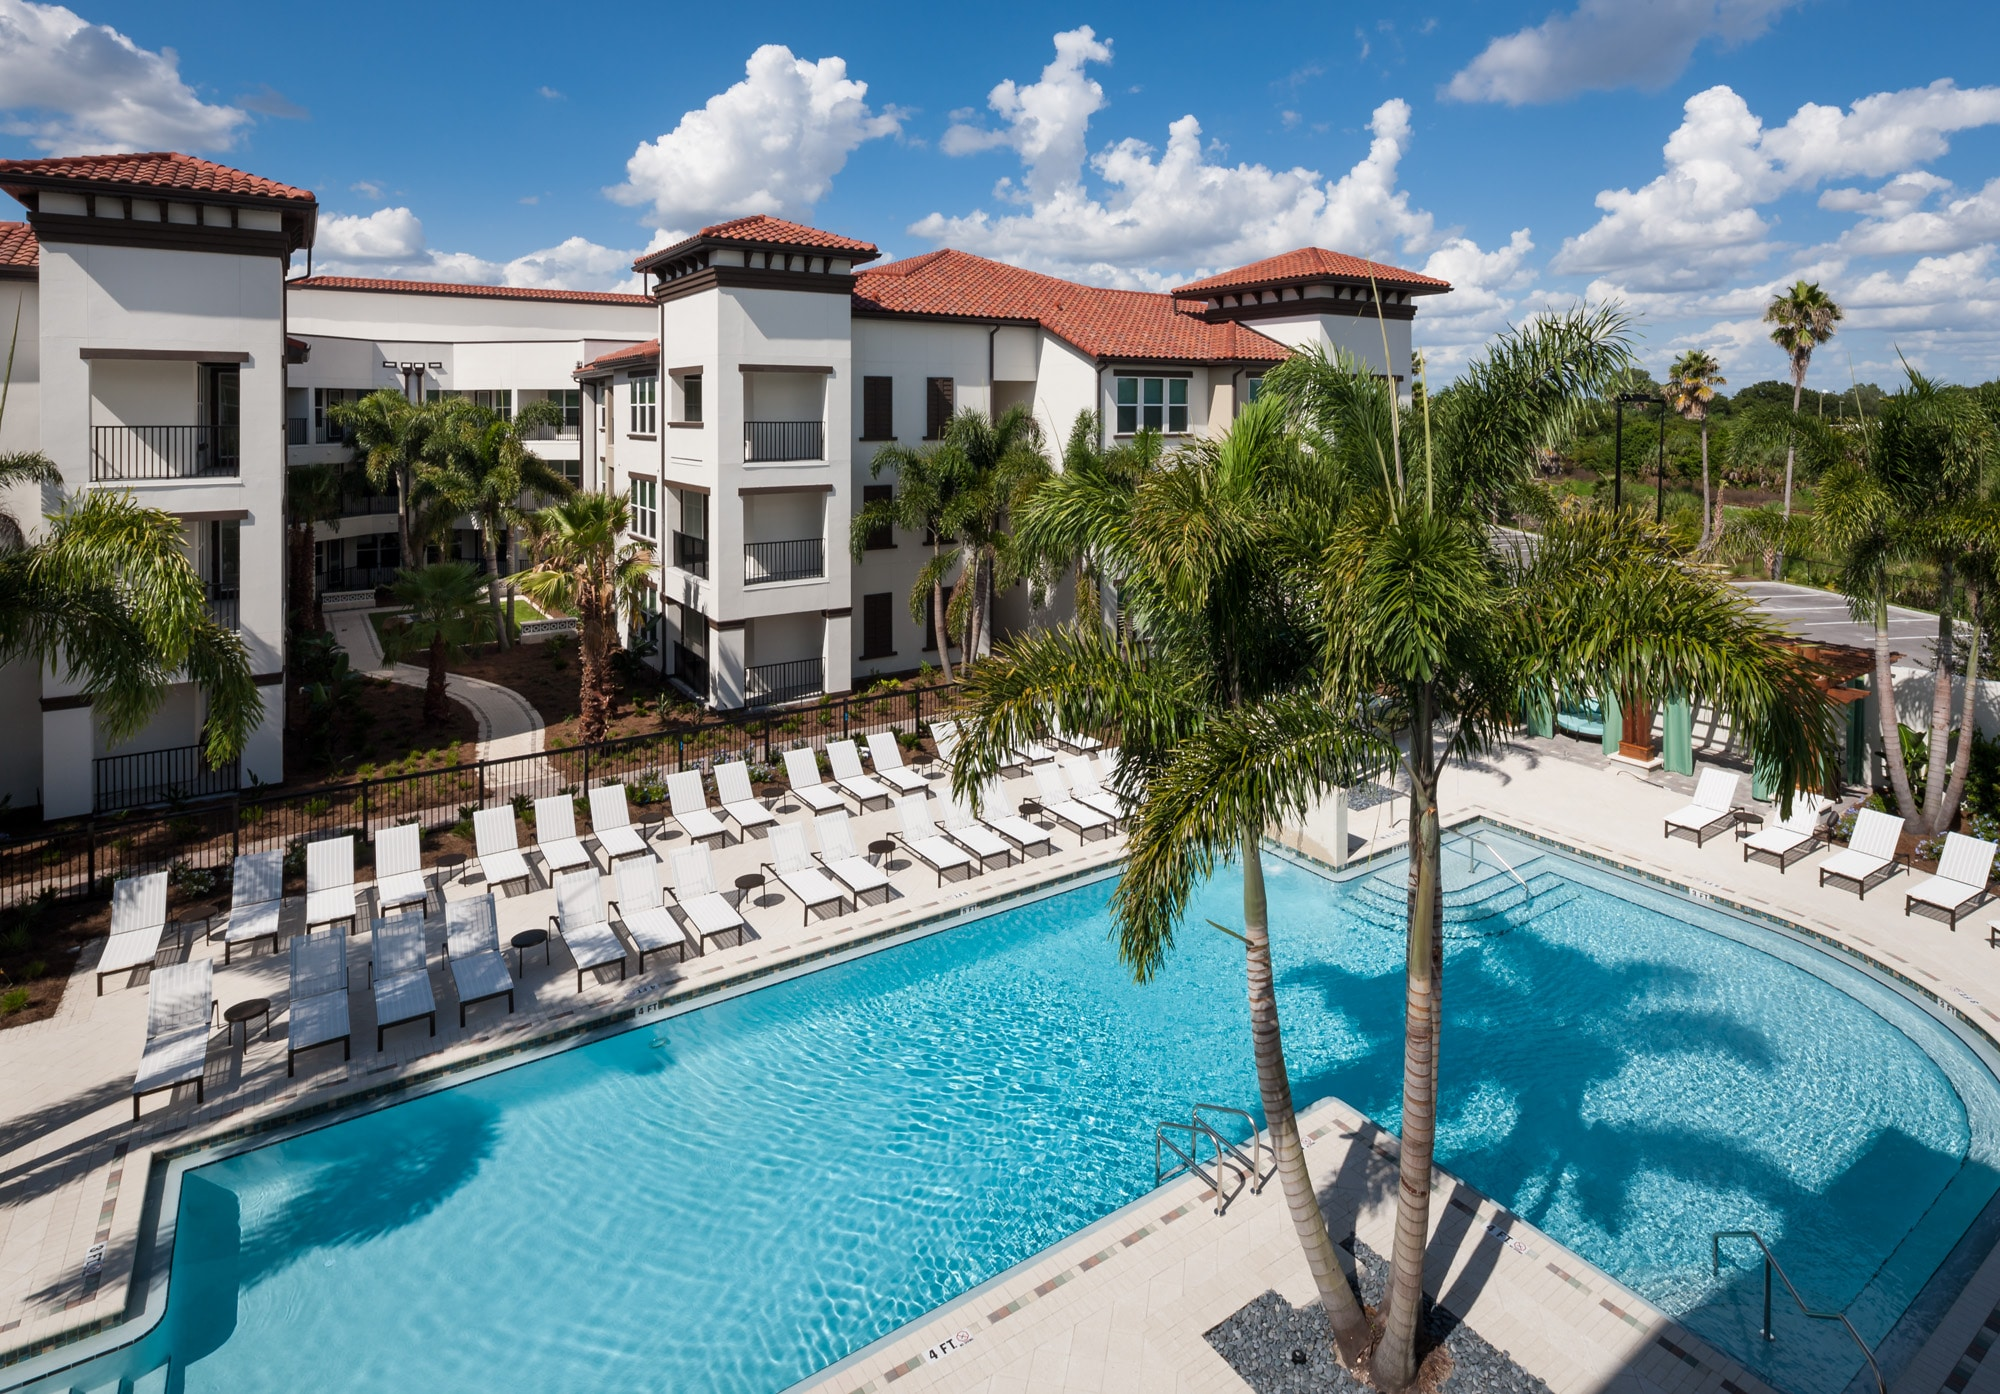 westshore resort style pool with chaise lounge chairs, palm trees, and view of apartment building and wooded area in the background - jefferson apartment group